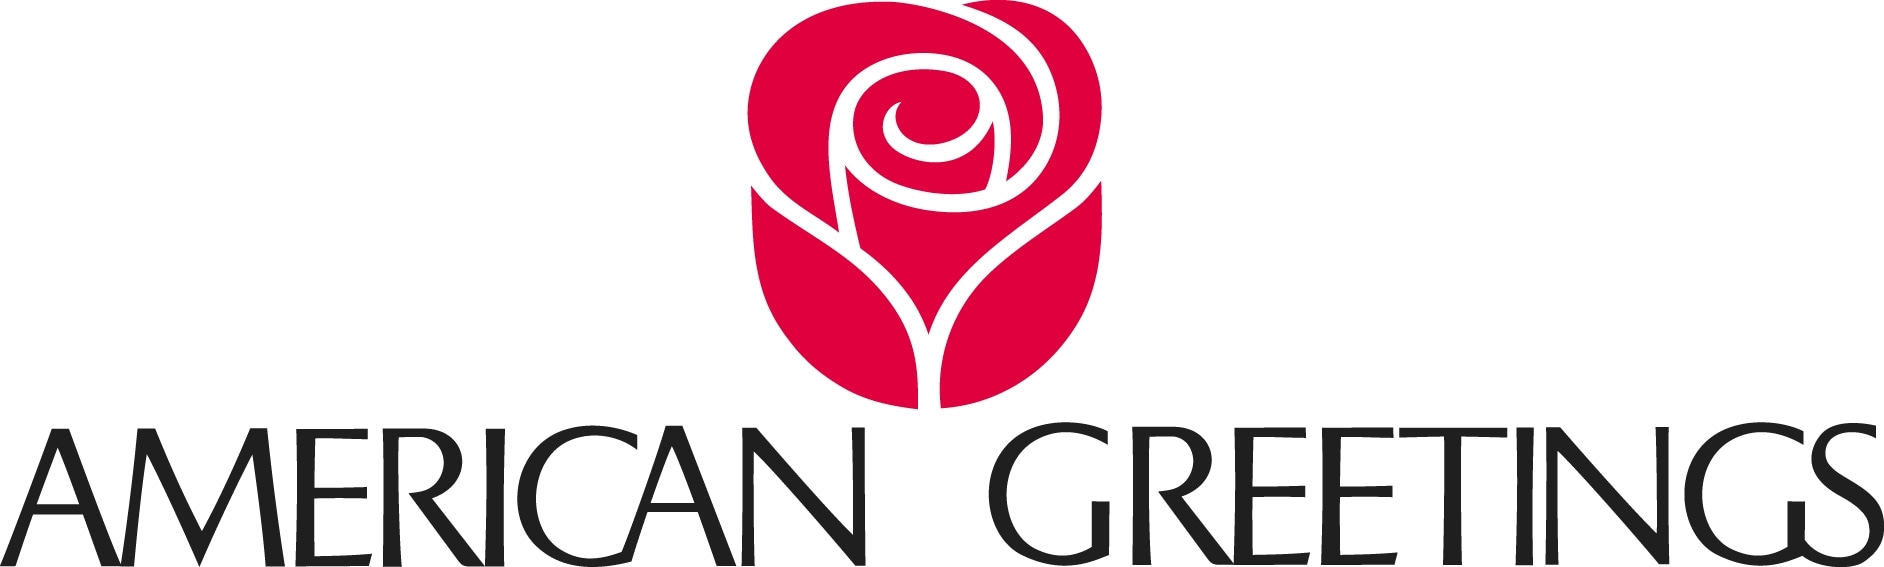 Shop americangreetings.com